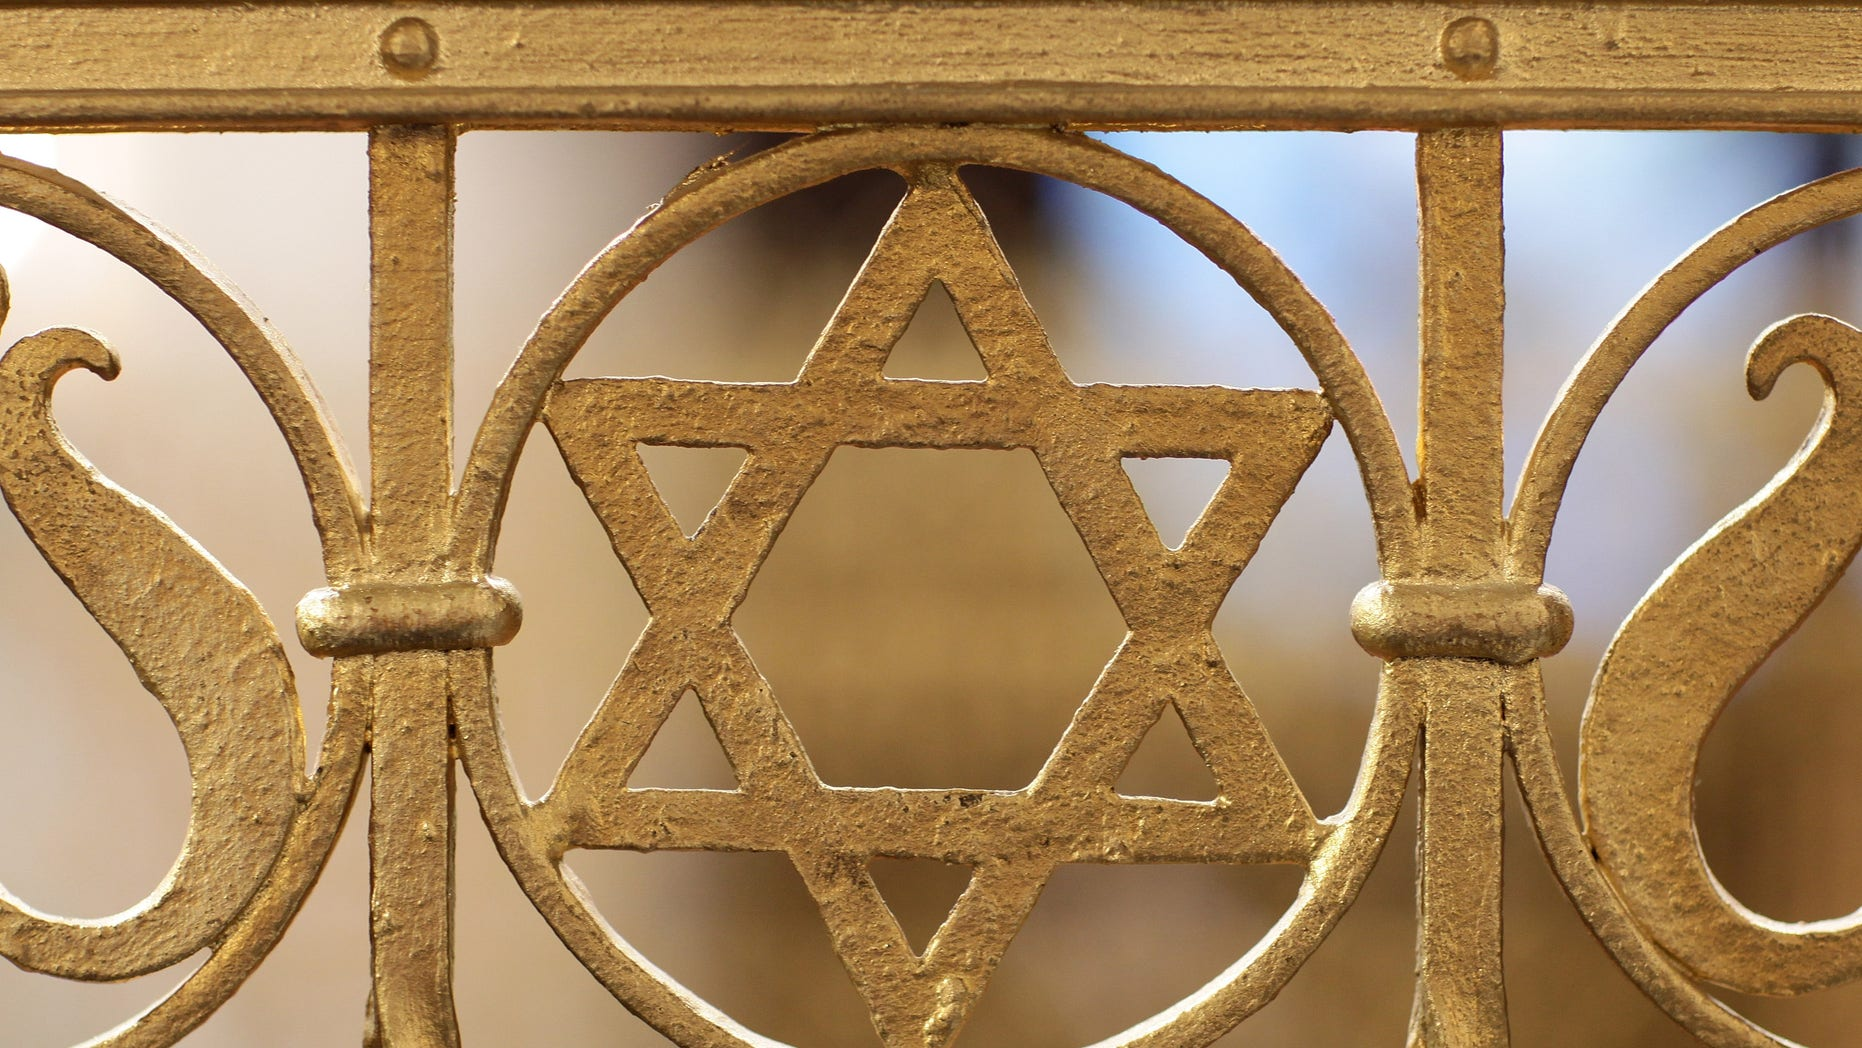 LEIPZIG, GERMANY - AUGUST 30:  A Star of David is visible among the ornamentation at the Brodyer Synagogue at the ordination of new Rabbis Shlomo Afanasev and Moshe Baumel on August 30, 2010 in Leipzig, Germany. Though both Afanasev and Baumel were born in the former Soviet Union, they grew up in Germany and are among a growing number of German-raised rabbis graduating from the Ronald Lauder-supported Rabbinical Seminary in Berlin.  (Photo by Sean Gallup/Getty Images)